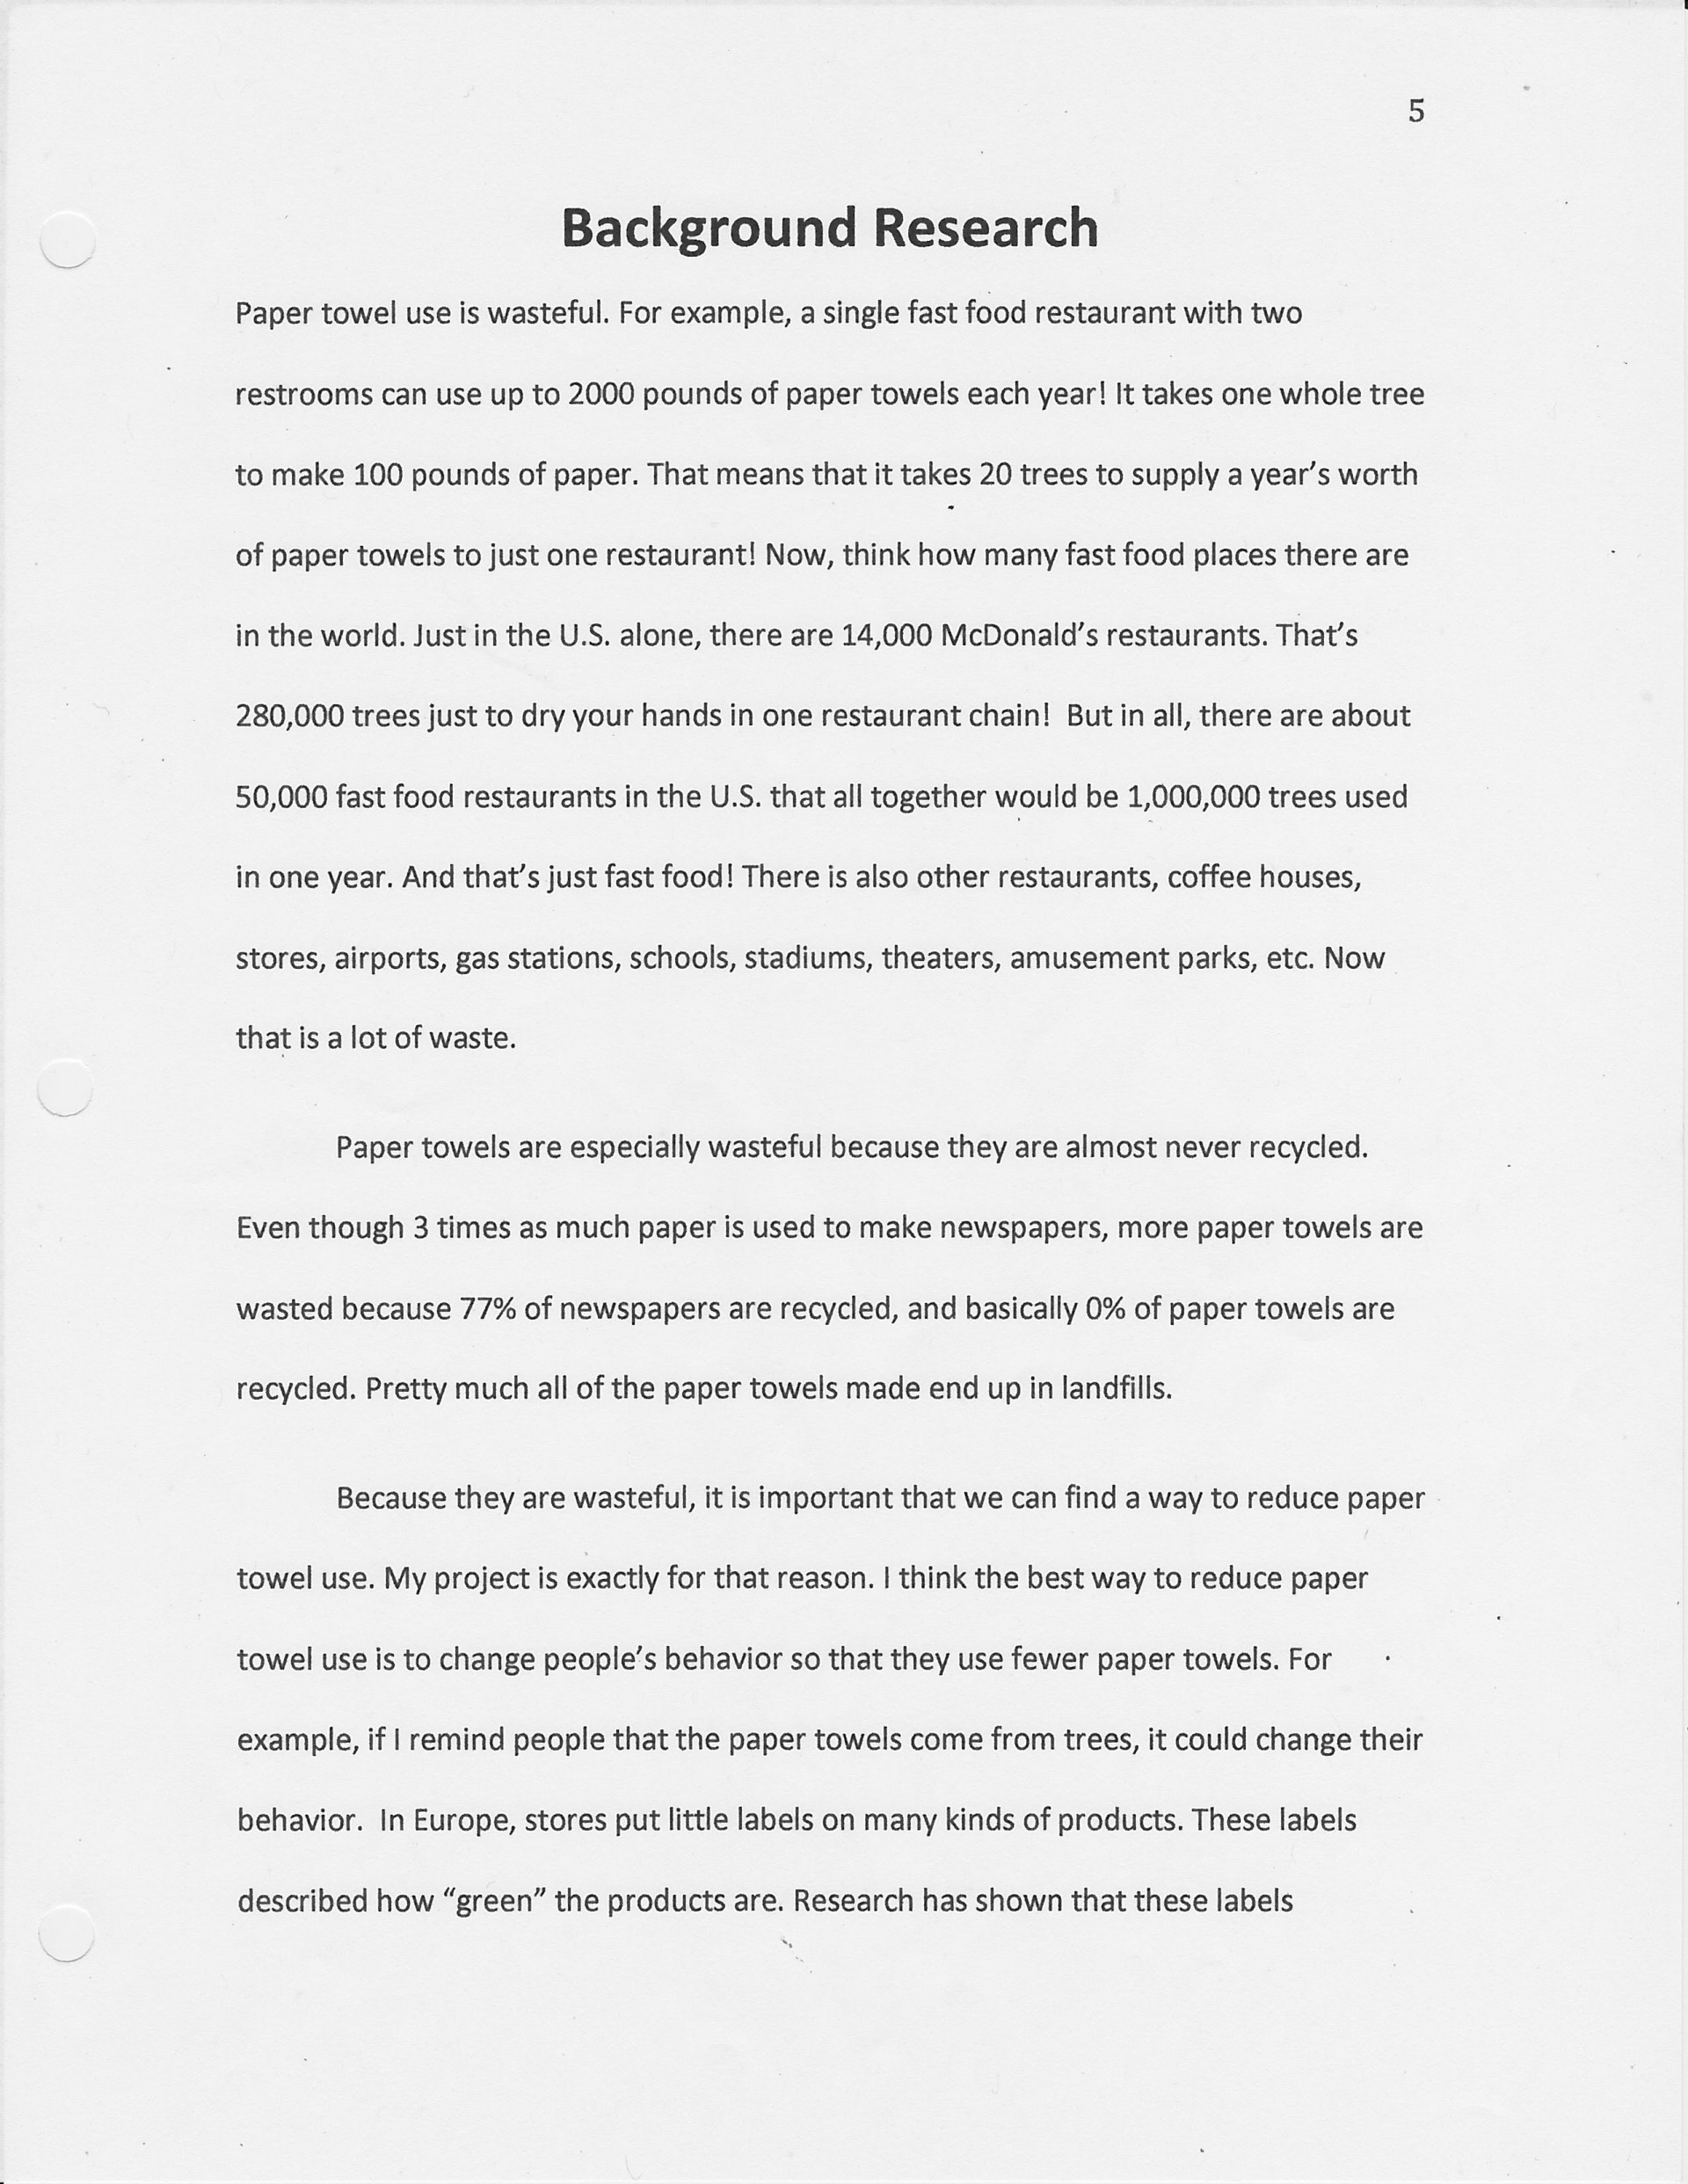 008 Research Paper Scn 0005heightu003d320u0026widthu003d247 Background Science Fair Breathtaking Example How To Write A For 1920